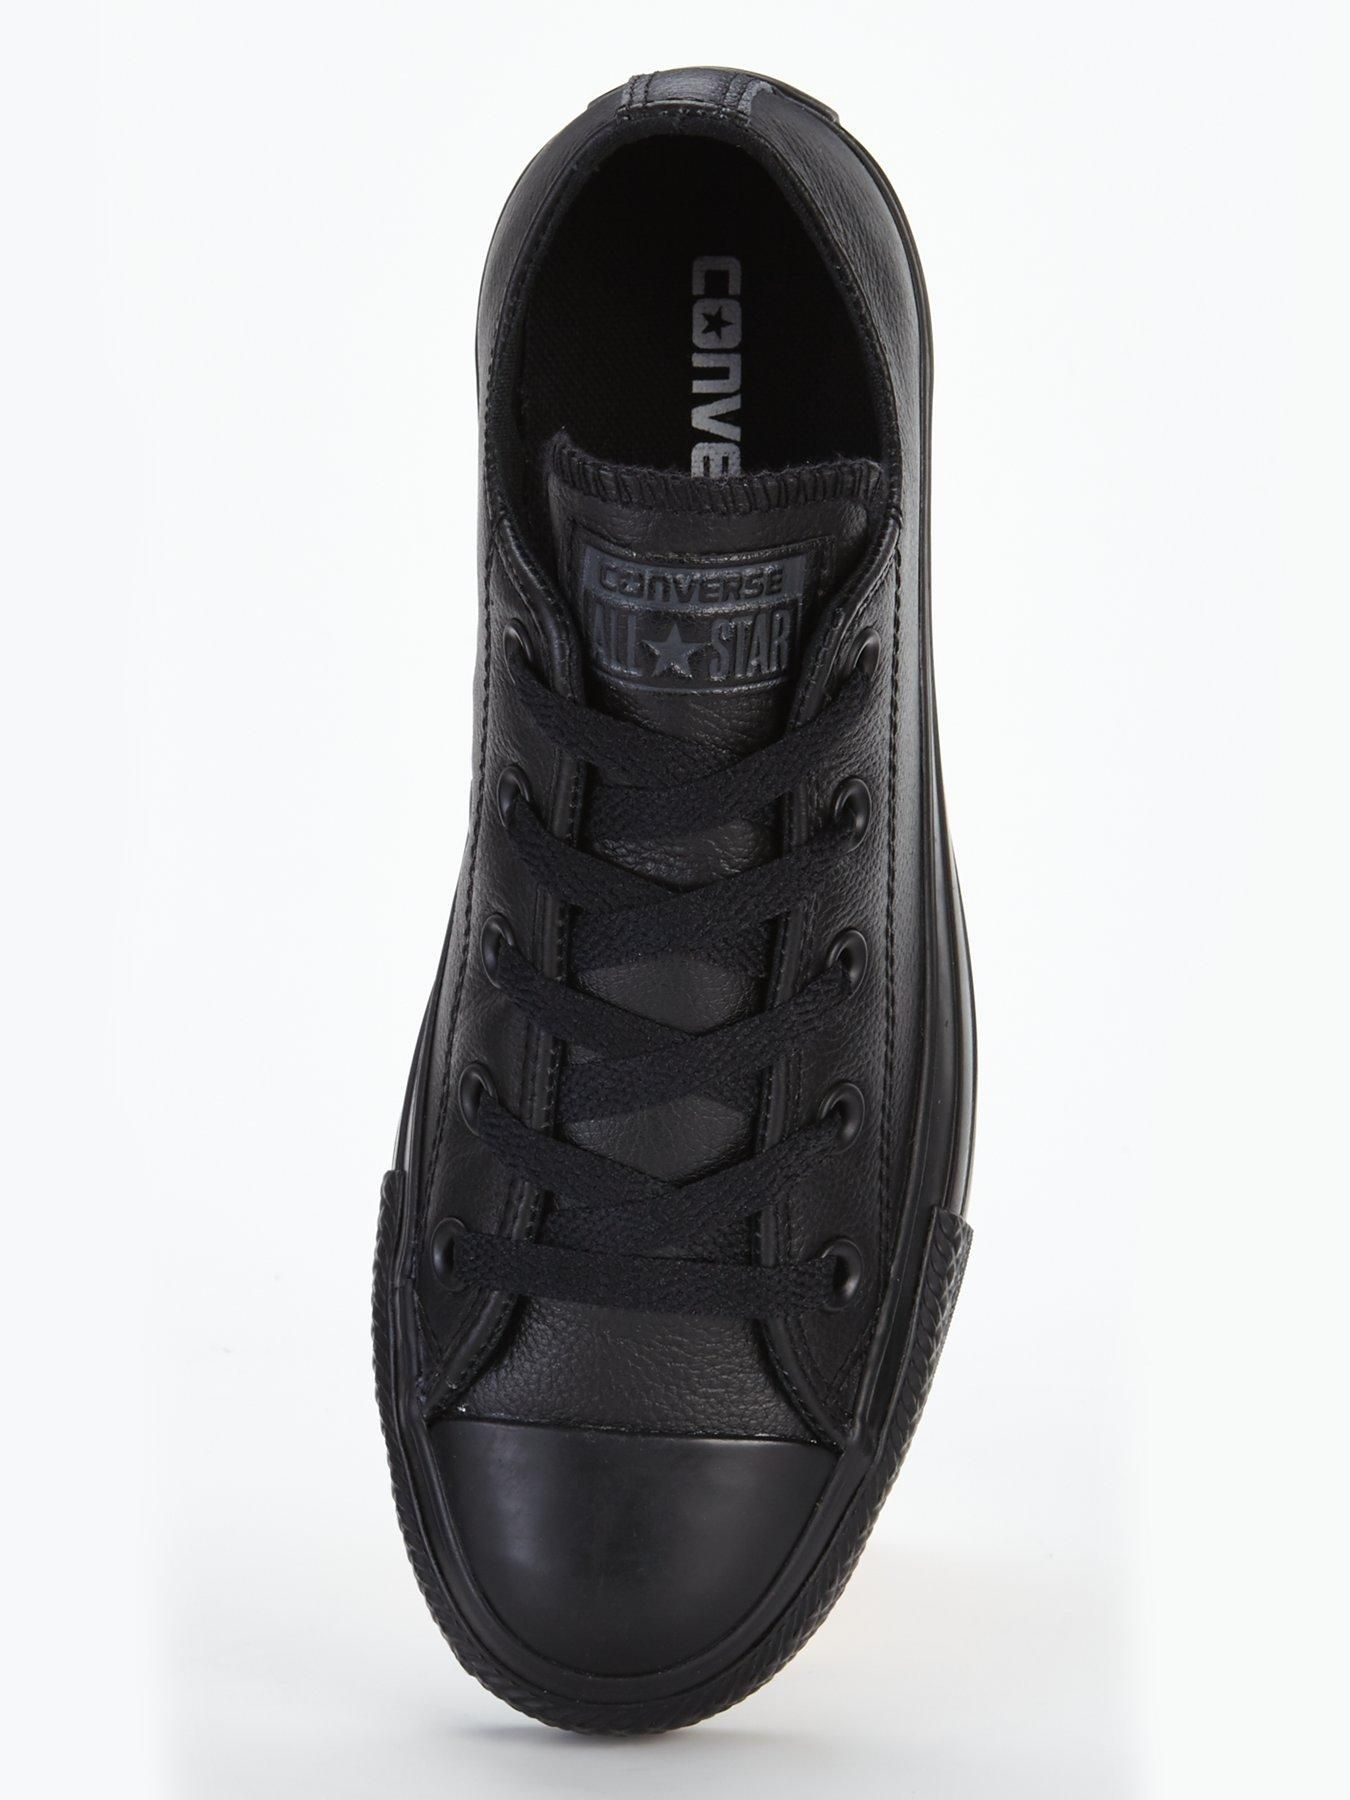 Converse Chuck Taylor All Star Leather Ox Plimsolls, Black